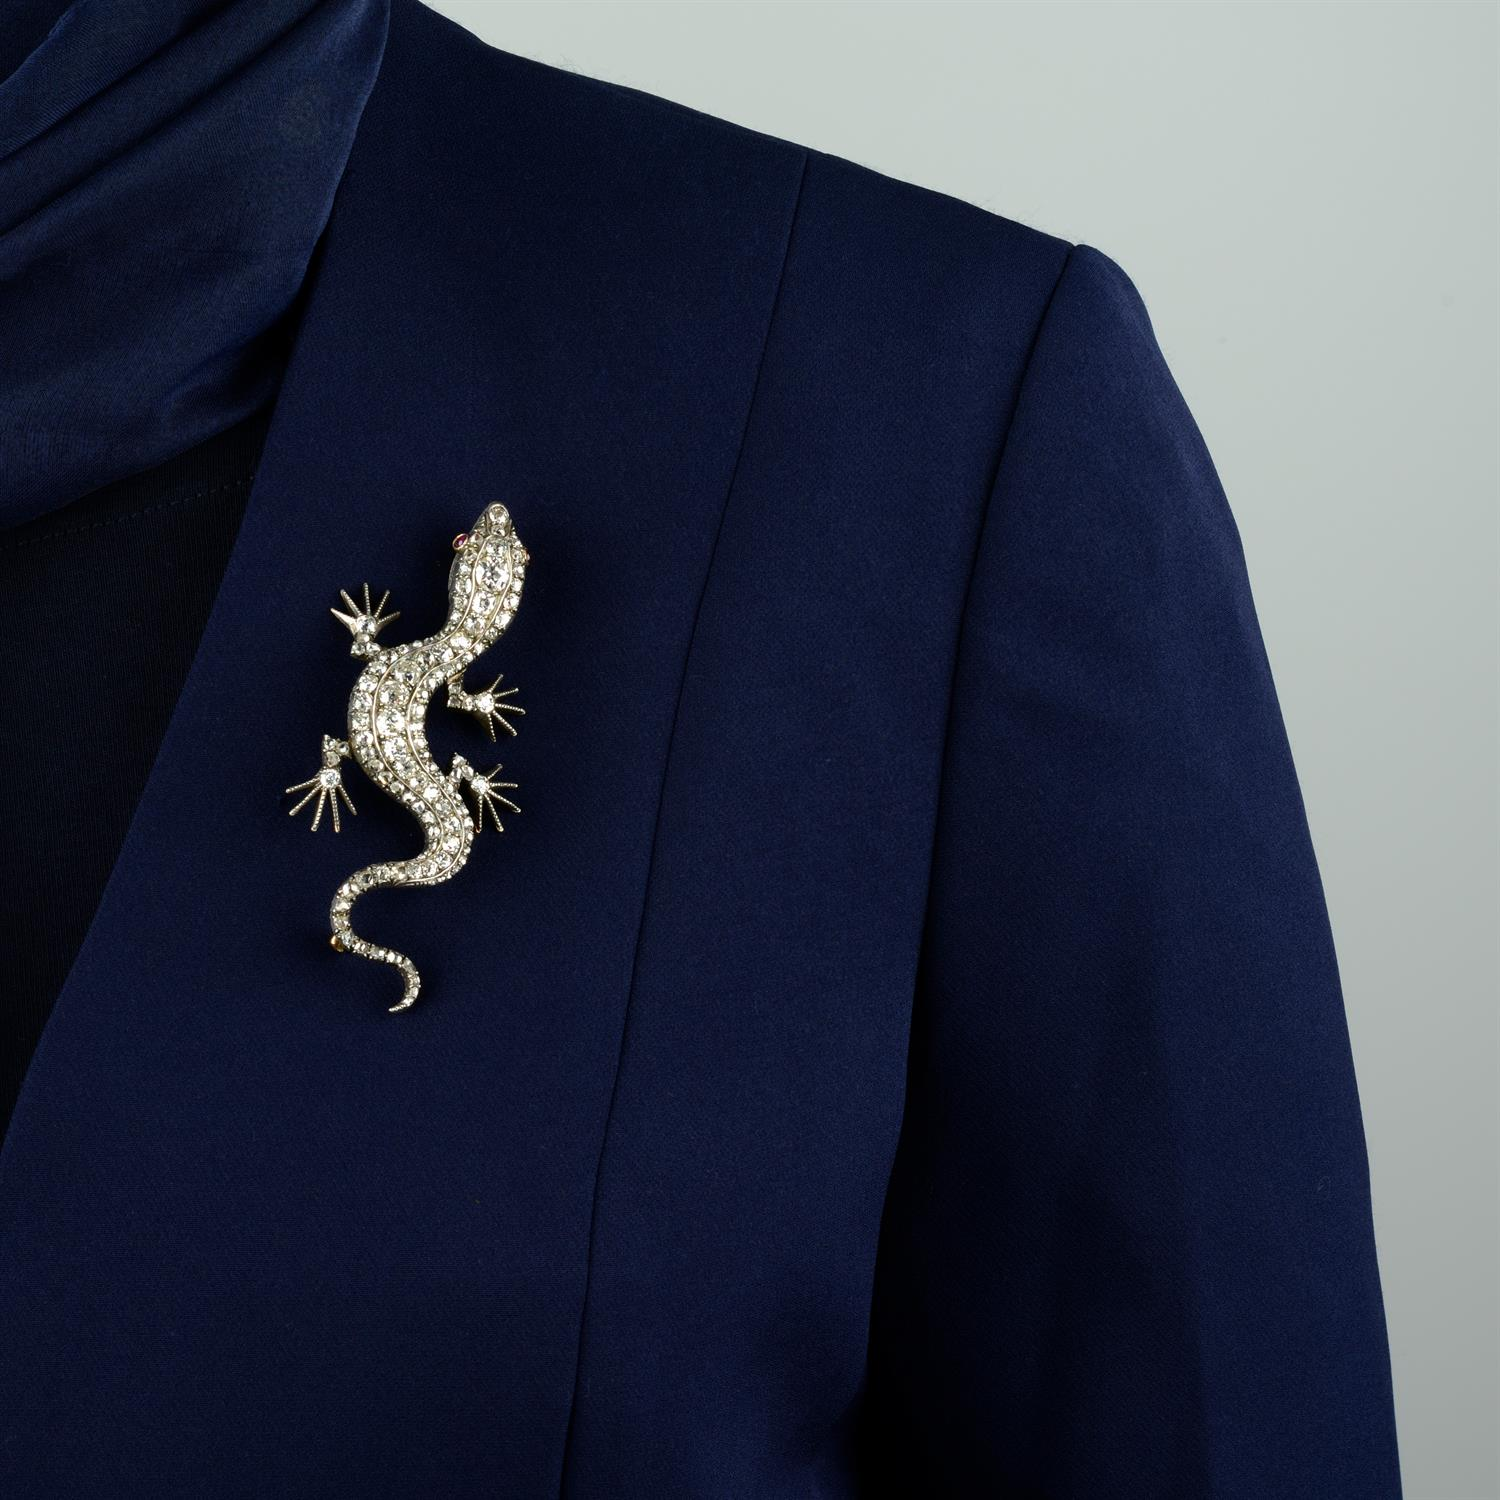 A Victorian silver and gold, old and rose-cut diamond salamander or lizard brooch. - Image 4 of 4